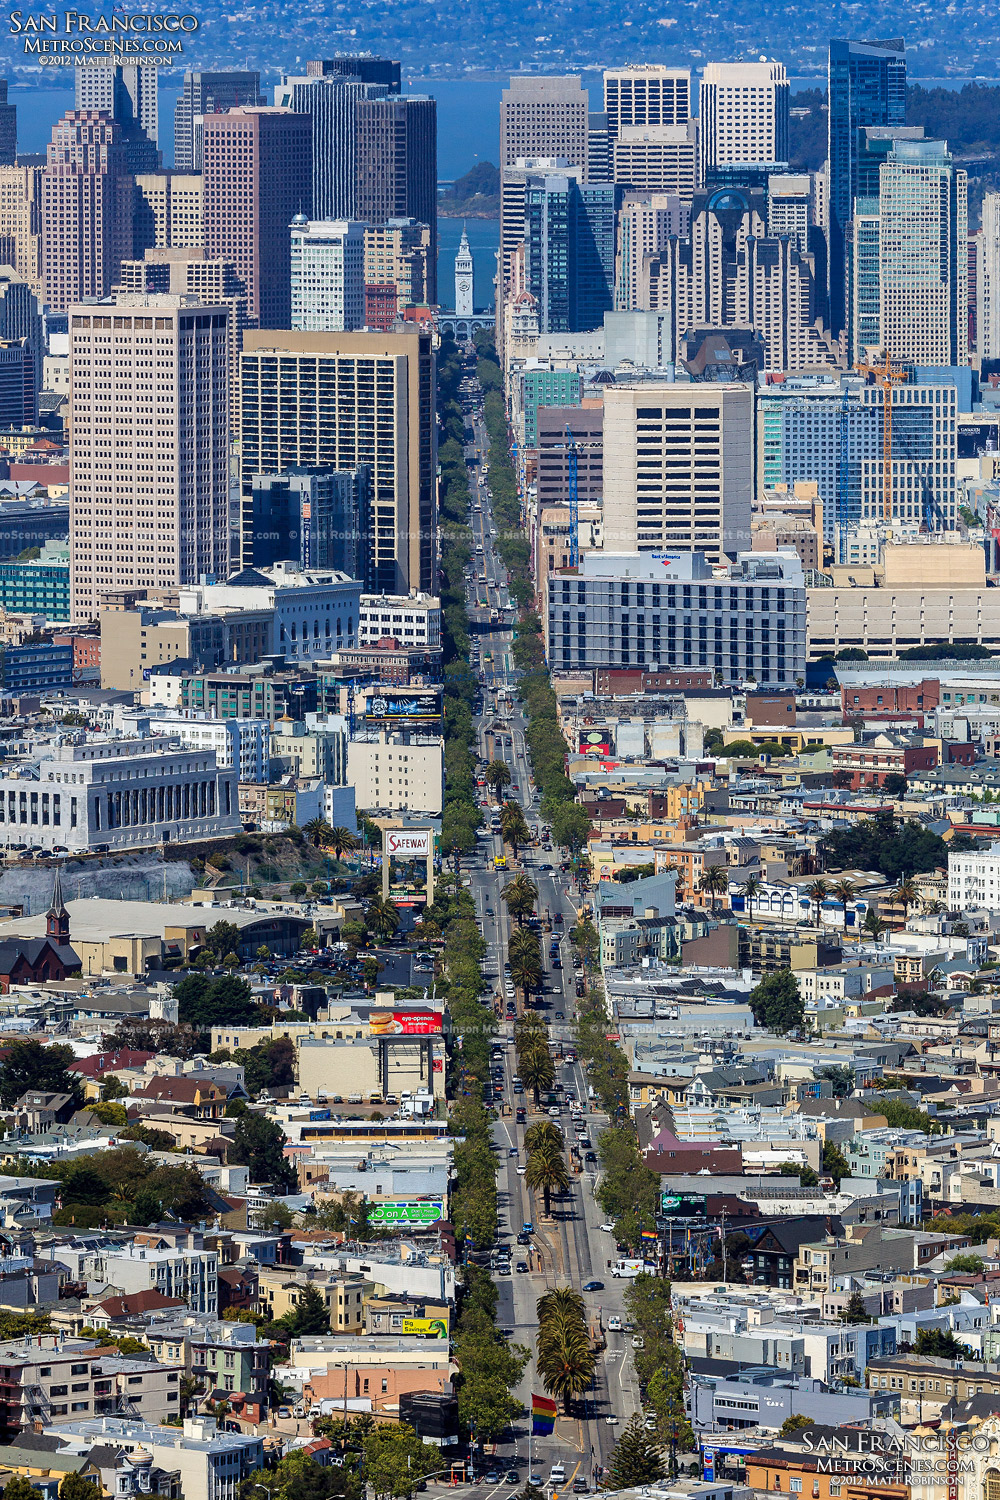 Looking down Market Street from Twin Peaks, San Francisco